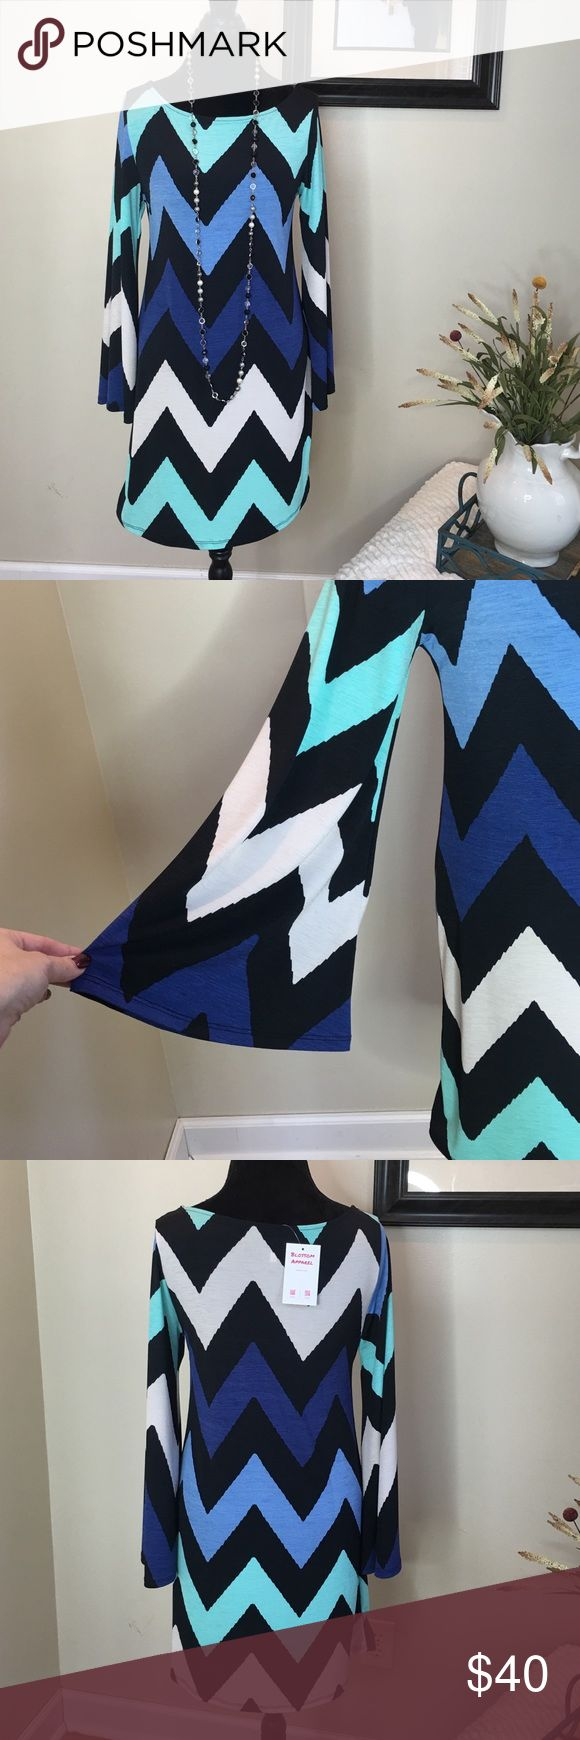 Chevron print wide sleeve dress Chevron print wide sleeve dress. 100% made in the USA!! 95% polyester and 5% spandex. Quality made dress!!! The Blossom Apparel Dresses Midi